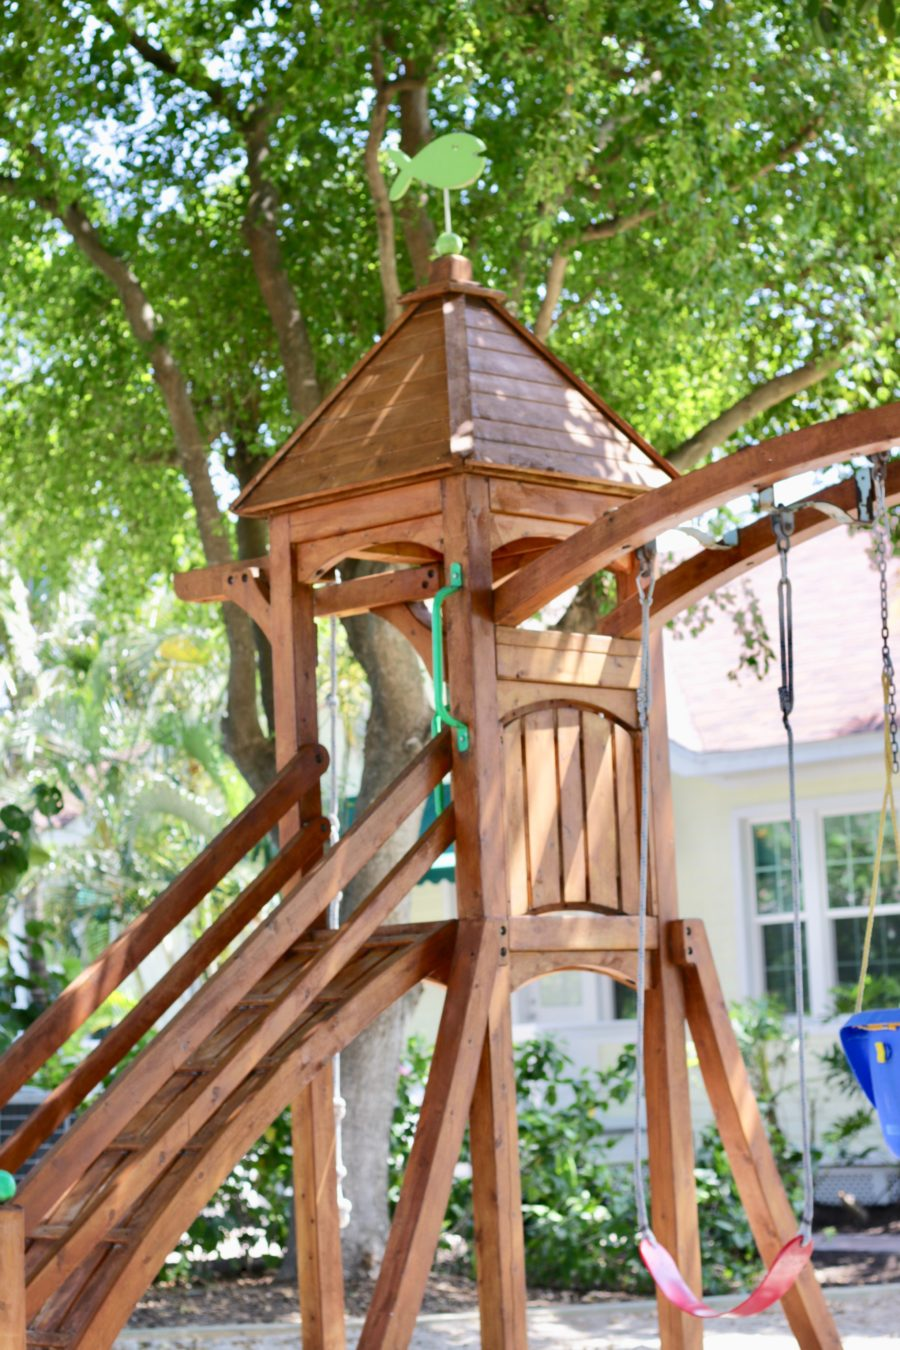 100 backyard play structure free images grass sand lawn